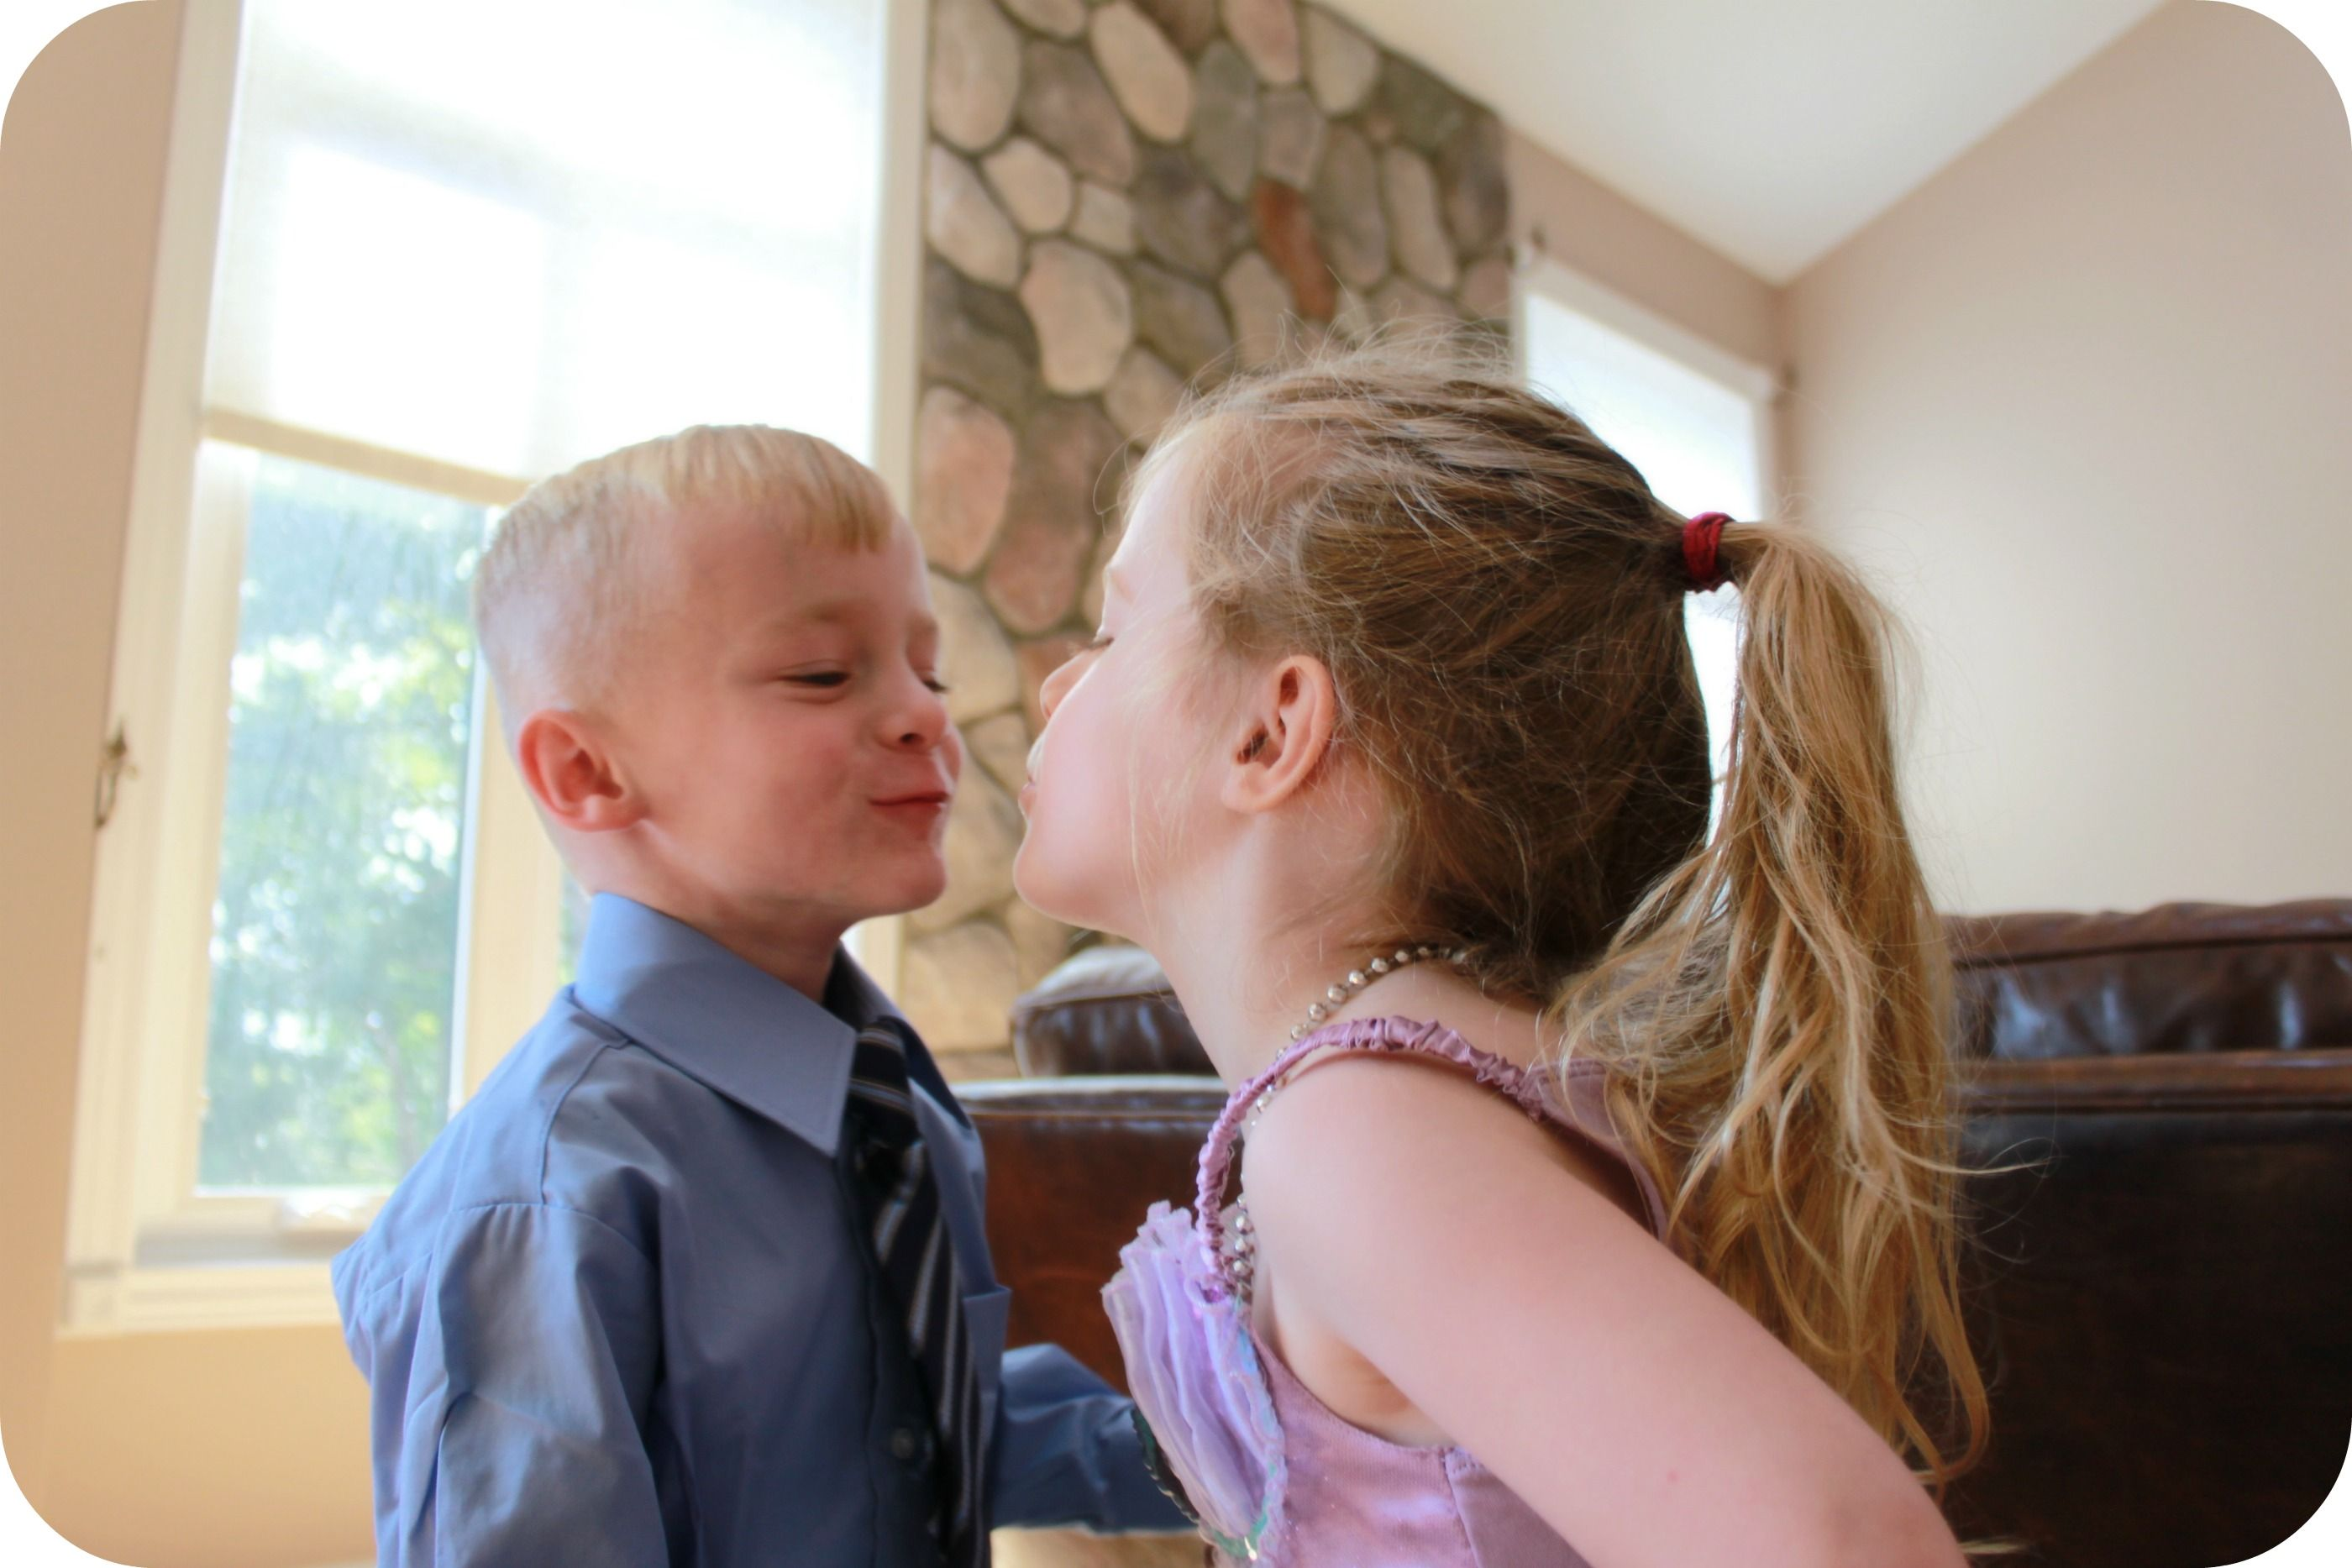 Dressed up couple moving in for a kiss ange pinterest kiss cute little baby girl and boy kissing hd wallpaper cute little cute little baby boy and baby girl ready to kissing hd wallpaper 1920 to beautiful sister l thecheapjerseys Images